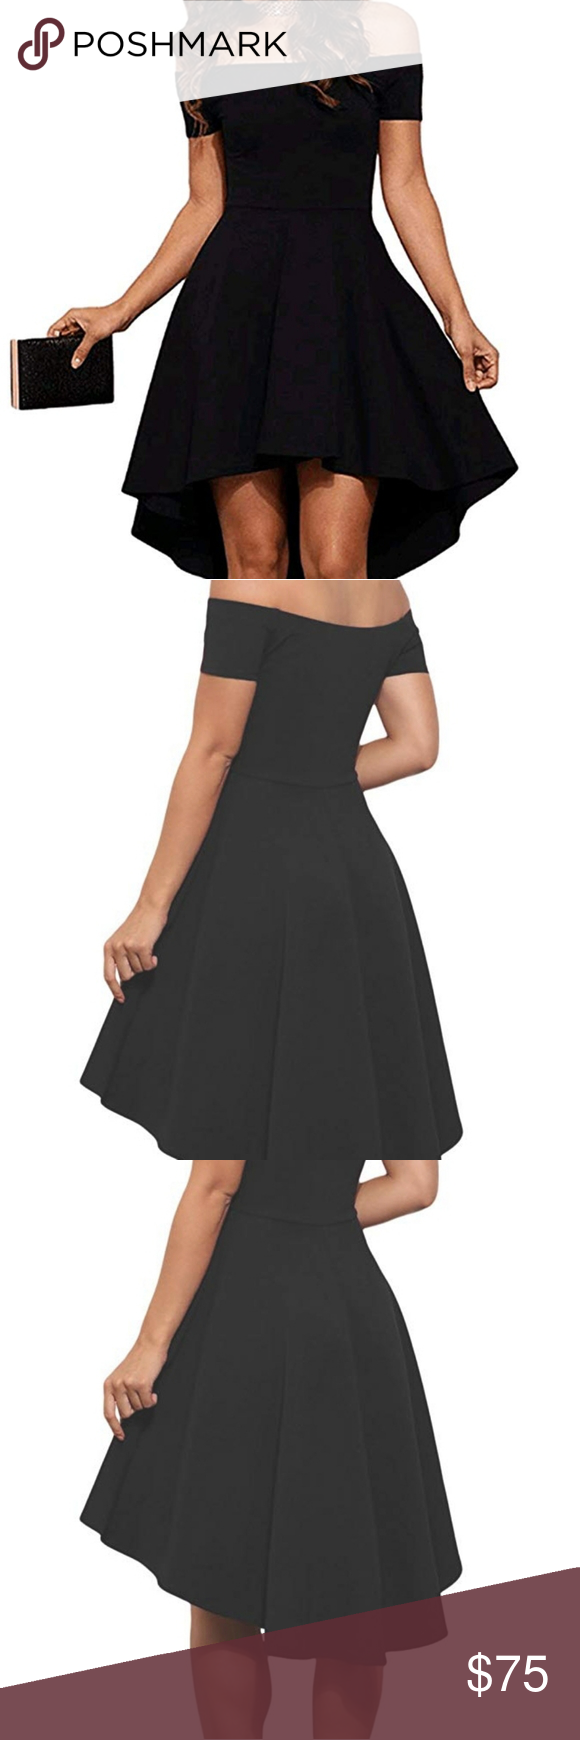 Black New Years Eve Holiday Party Cocktail Dress Boutique